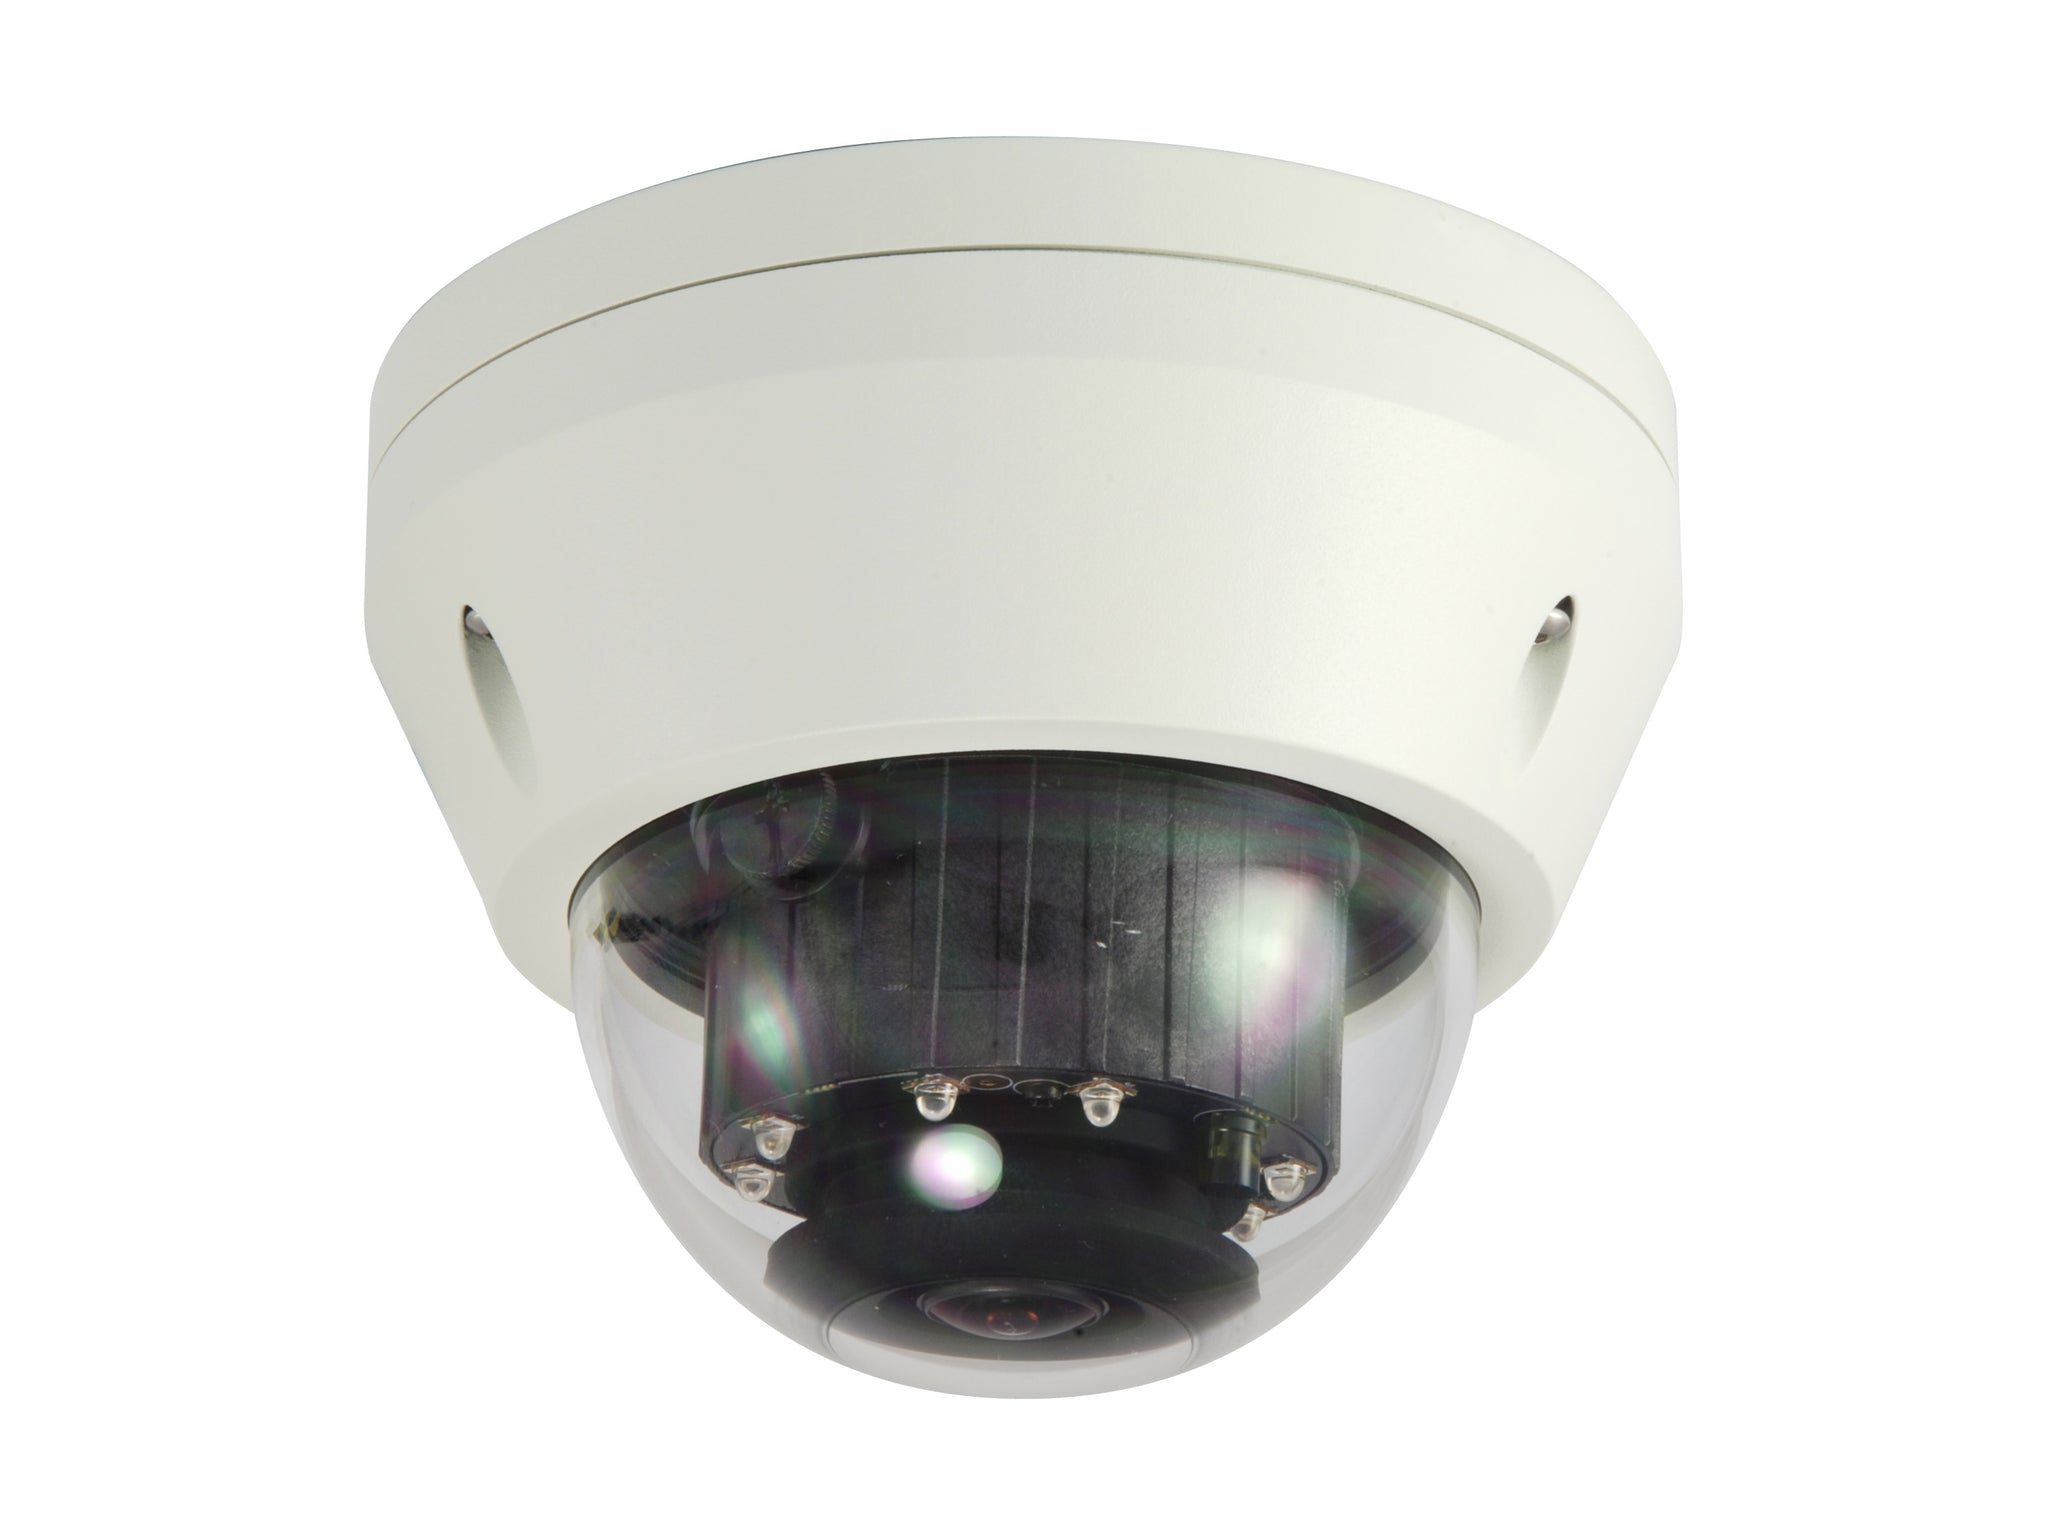 FCS-3306 Fixed Dome IP Network Camera, H.265/264, 3MP, 802.3af PoE, IR LEDs, Indoor/Outdoor, Vandalproof